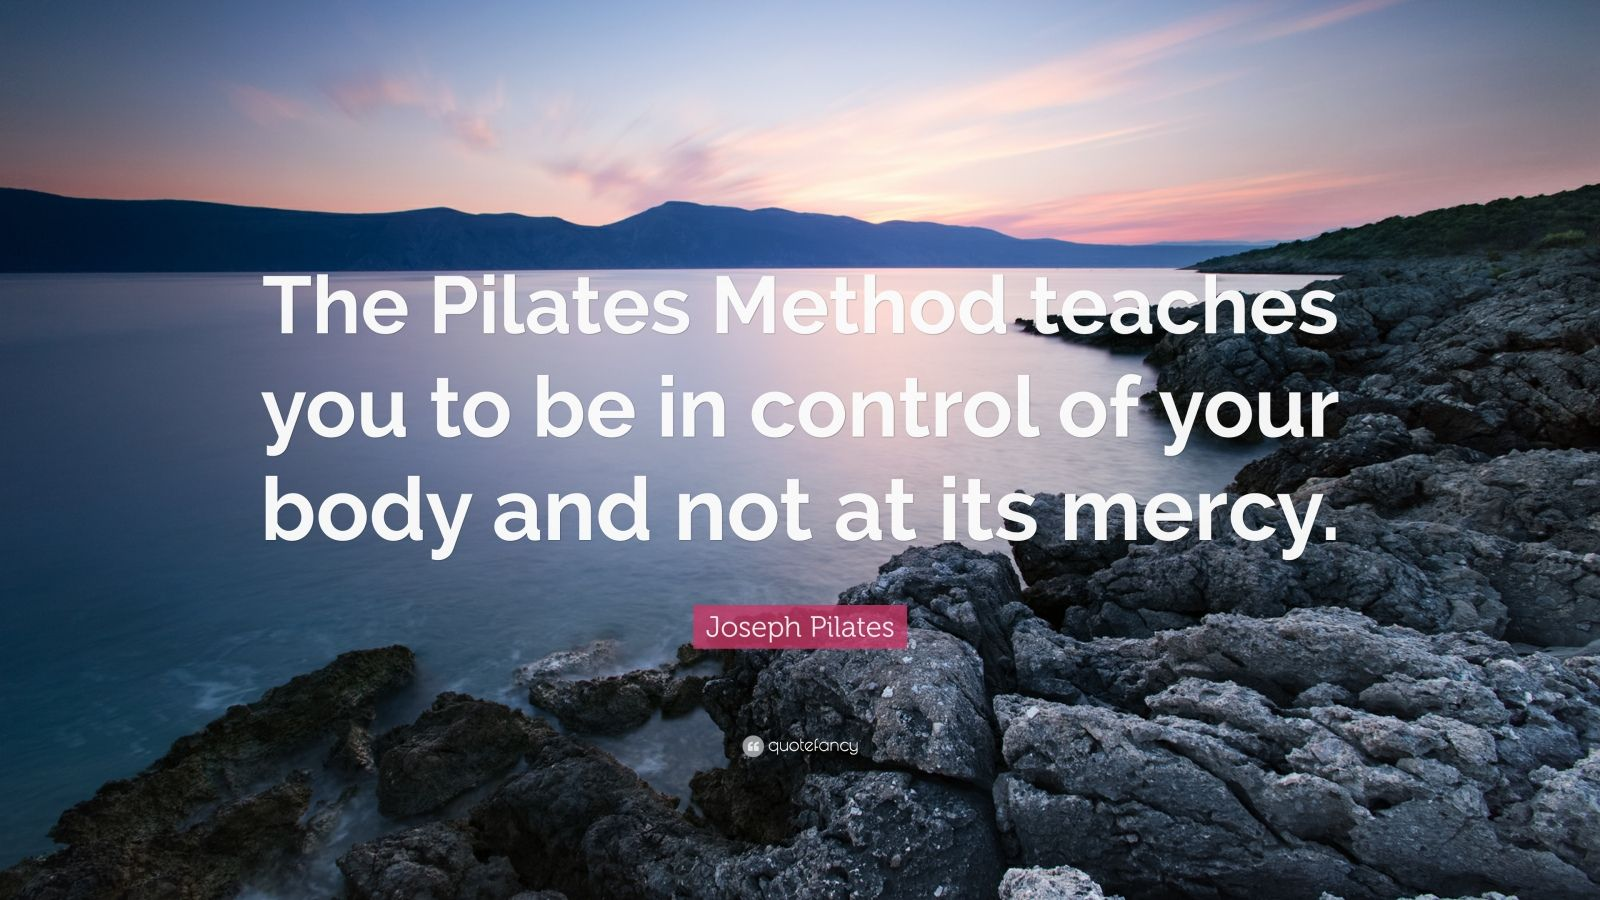 """Joseph Pilates Quote: """"The Pilates Method teaches you to be in control of your body and not at its mercy."""""""